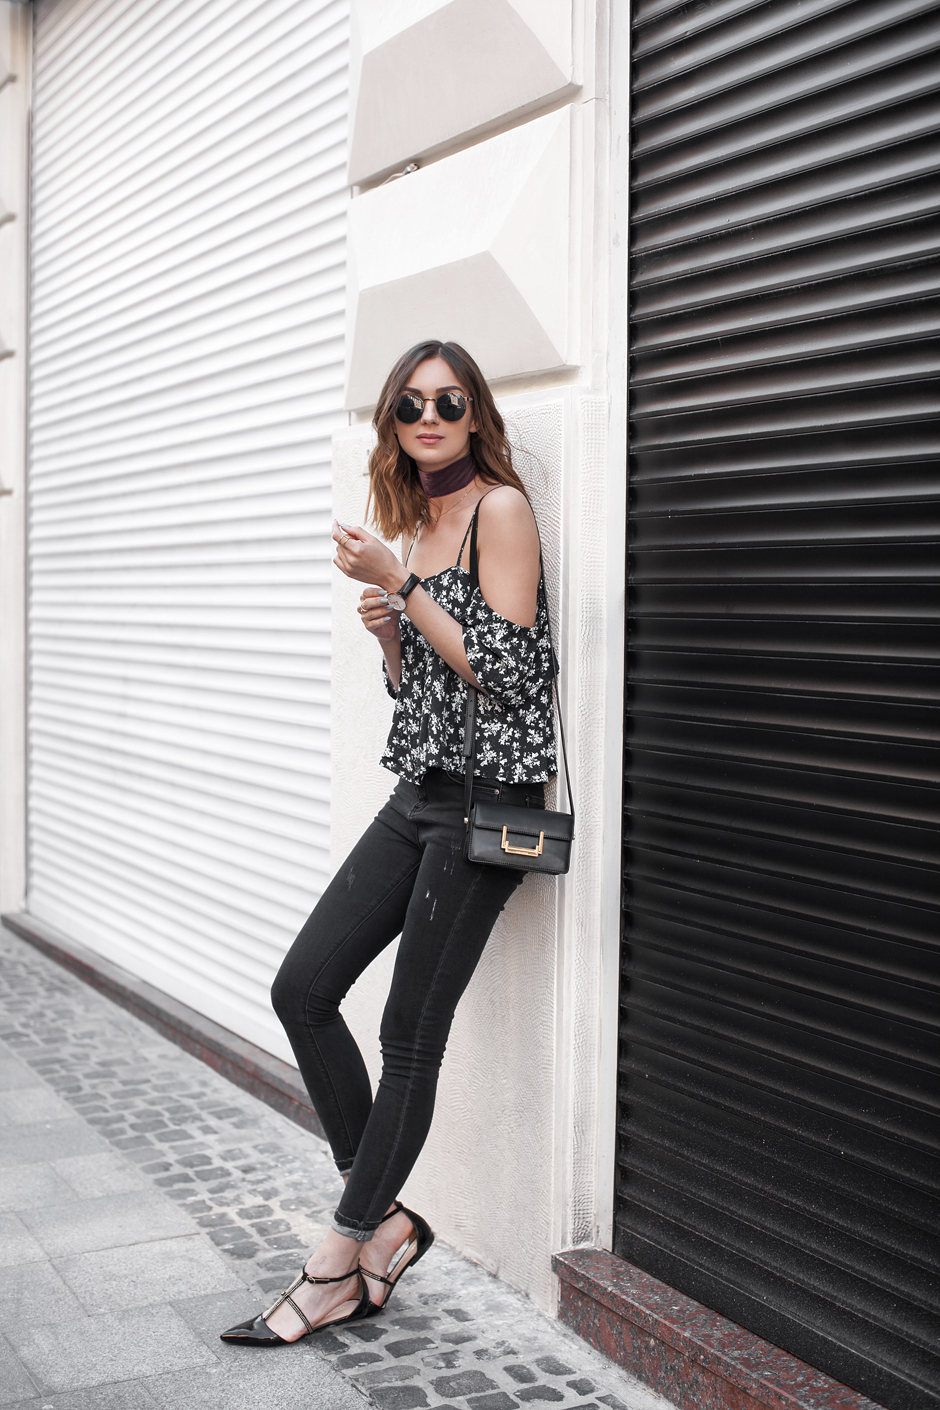 skinny-jeans-off-shoulder-top-outfit-street-style